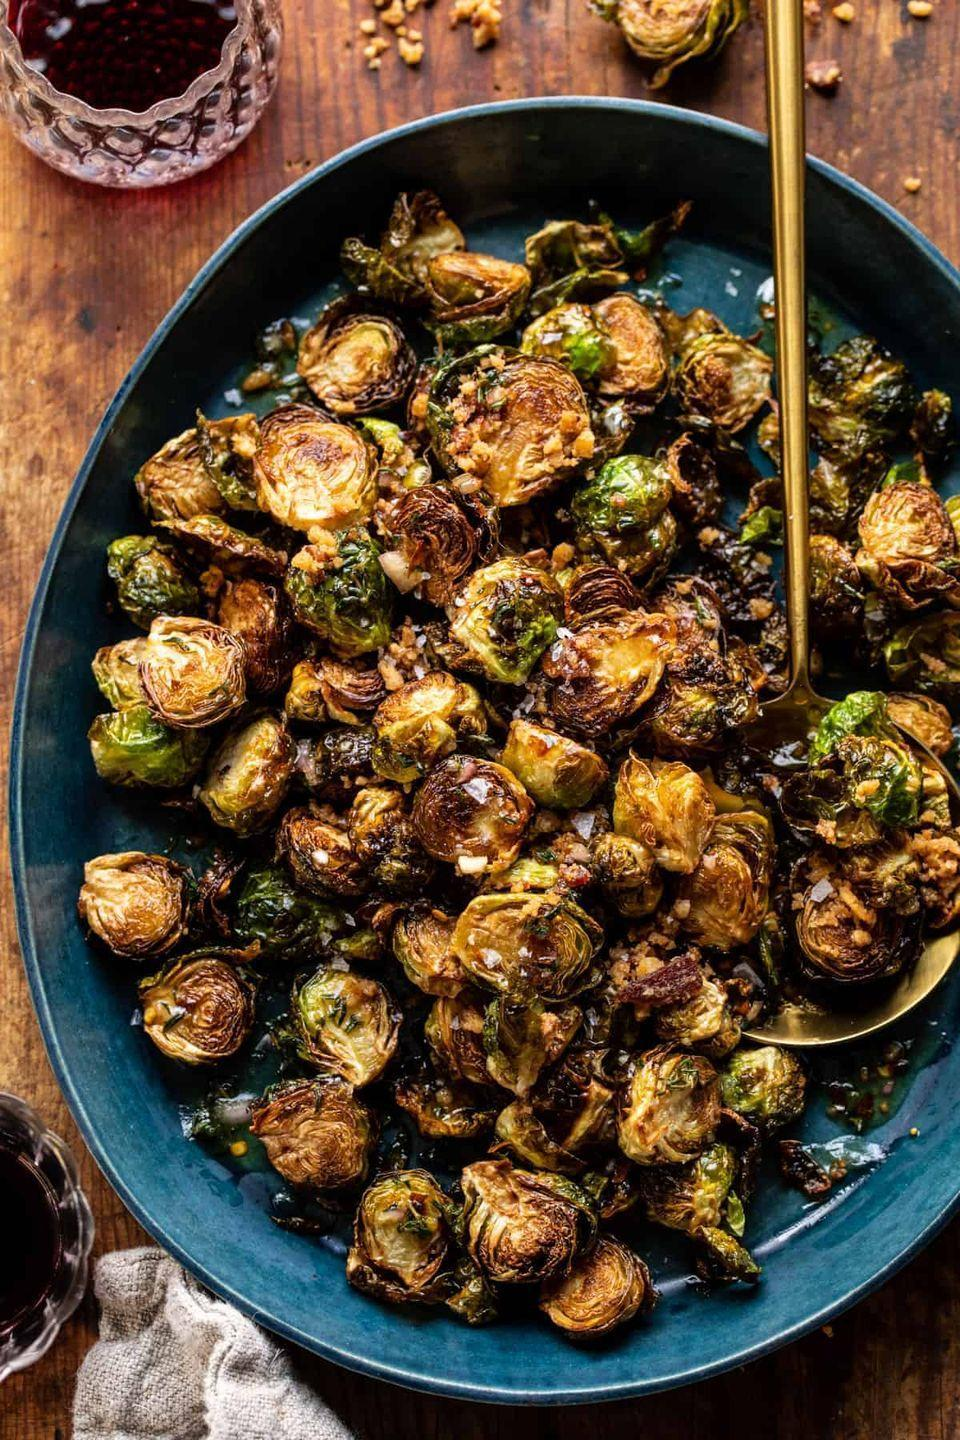 """<p>Food blogger Tieghan Gerard says her salty-sweet sprouts have the texture of potato chips. They're certainly just as addictive!</p><p><strong>Get the recipe from <a href=""""https://www.halfbakedharvest.com/fried-brussels-sprouts/"""" rel=""""nofollow noopener"""" target=""""_blank"""" data-ylk=""""slk:Half-Baked Harvest"""" class=""""link rapid-noclick-resp"""">Half-Baked Harvest</a>. </strong></p>"""